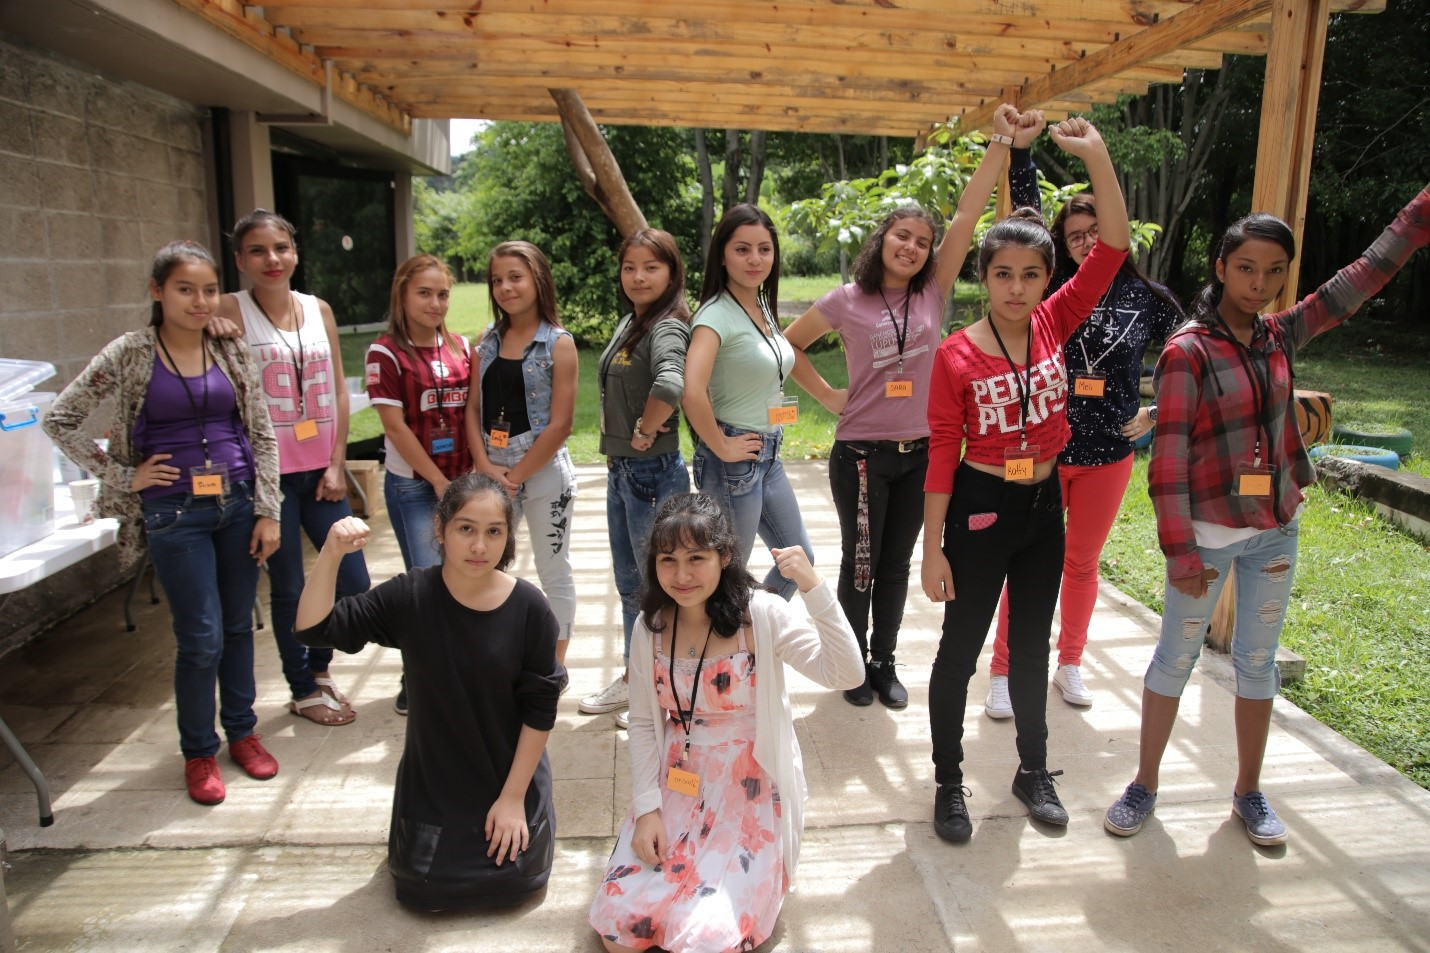 A group of Costa Rica girls stand as they strike various empowering poses.